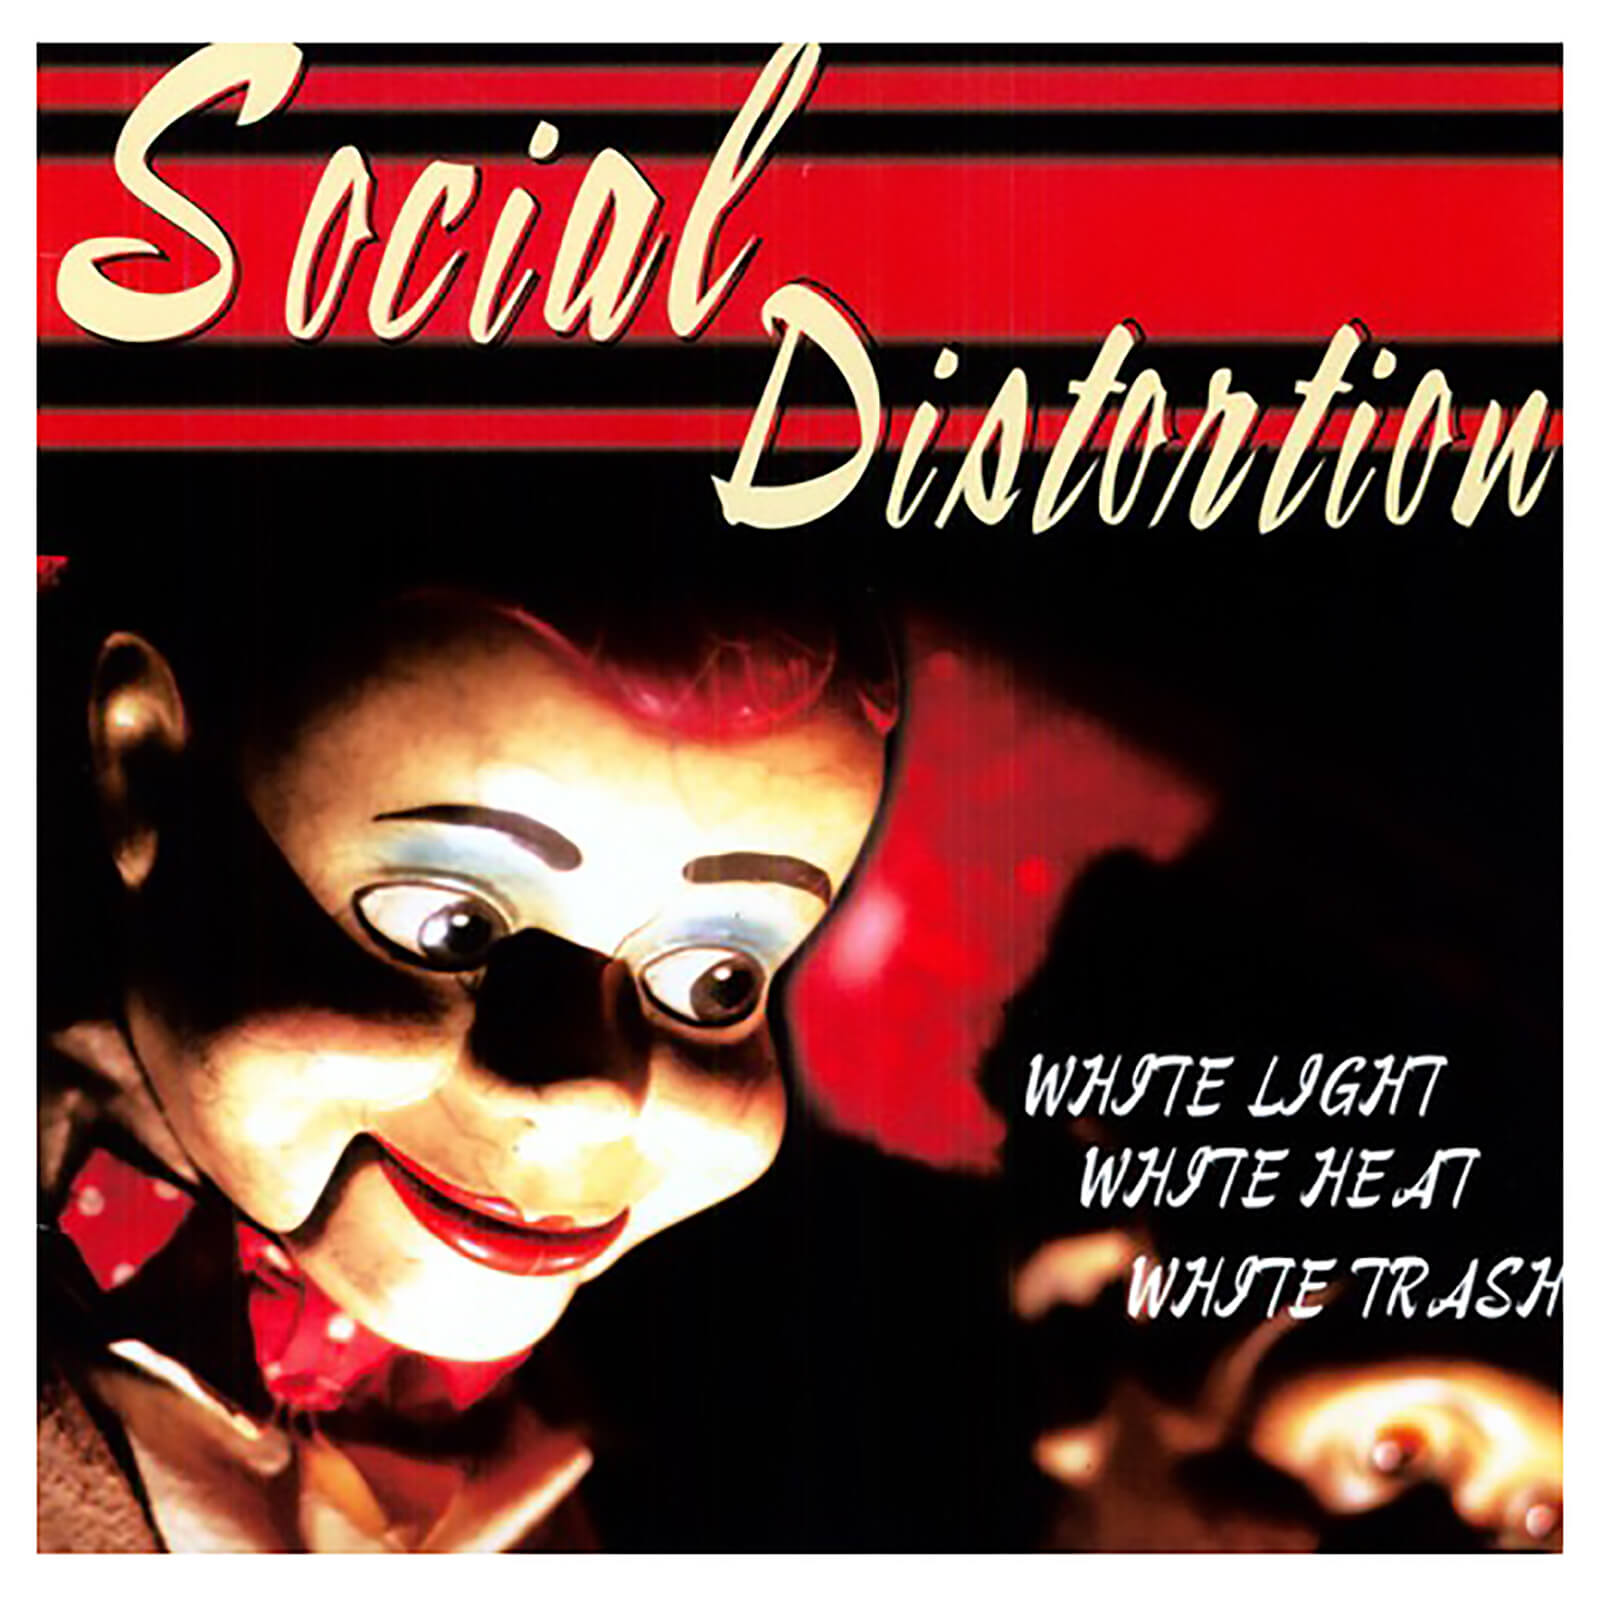 Social Distortion - White Light White Heat White Trash - Vinyl